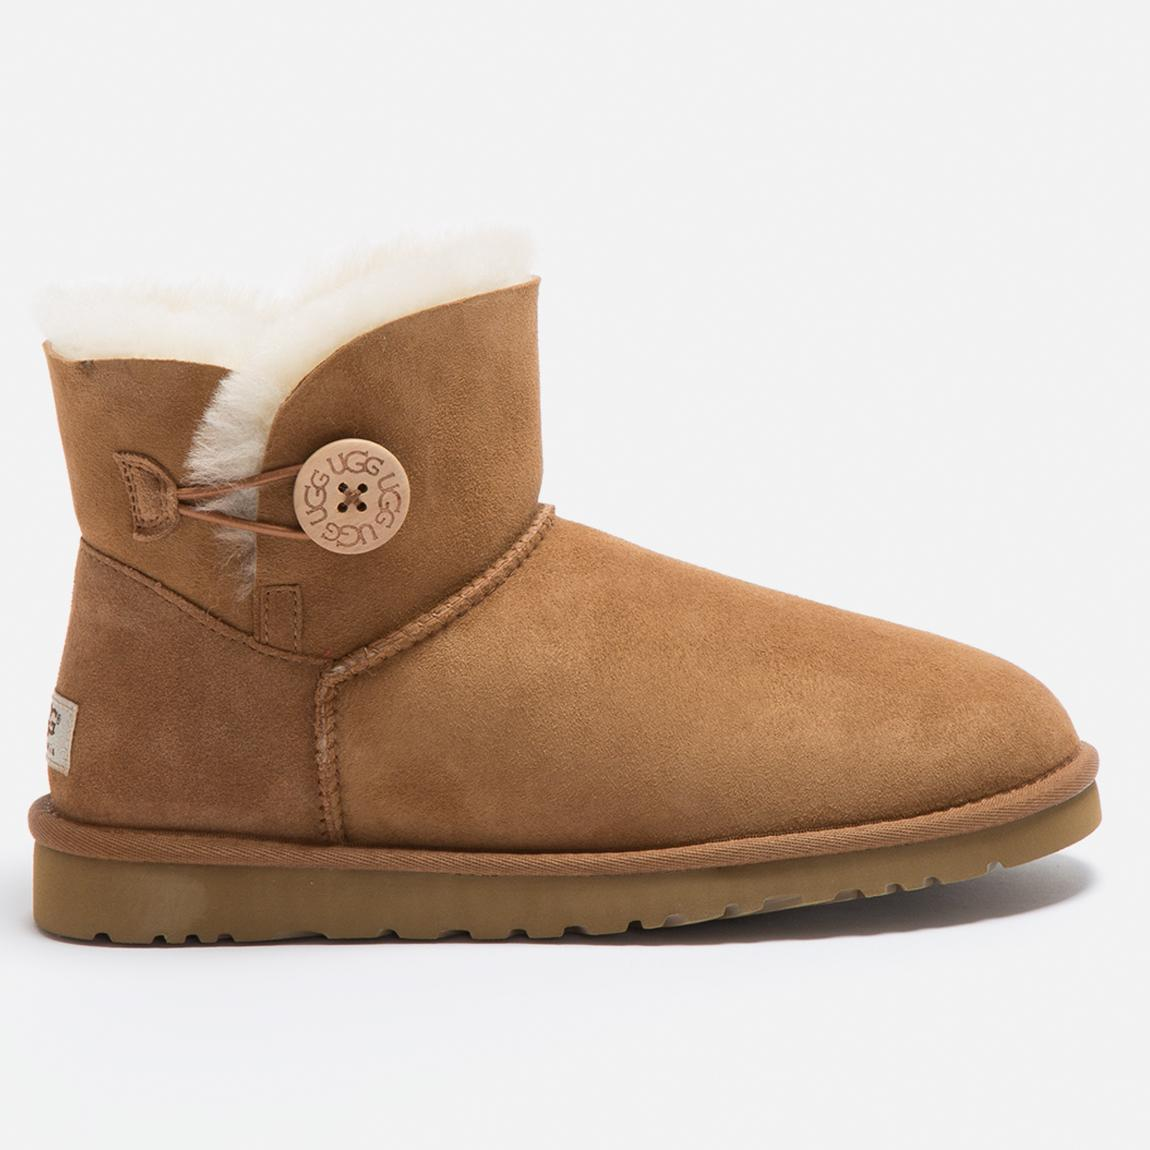 Ugg Boots Discounted Quality Furniture Inc